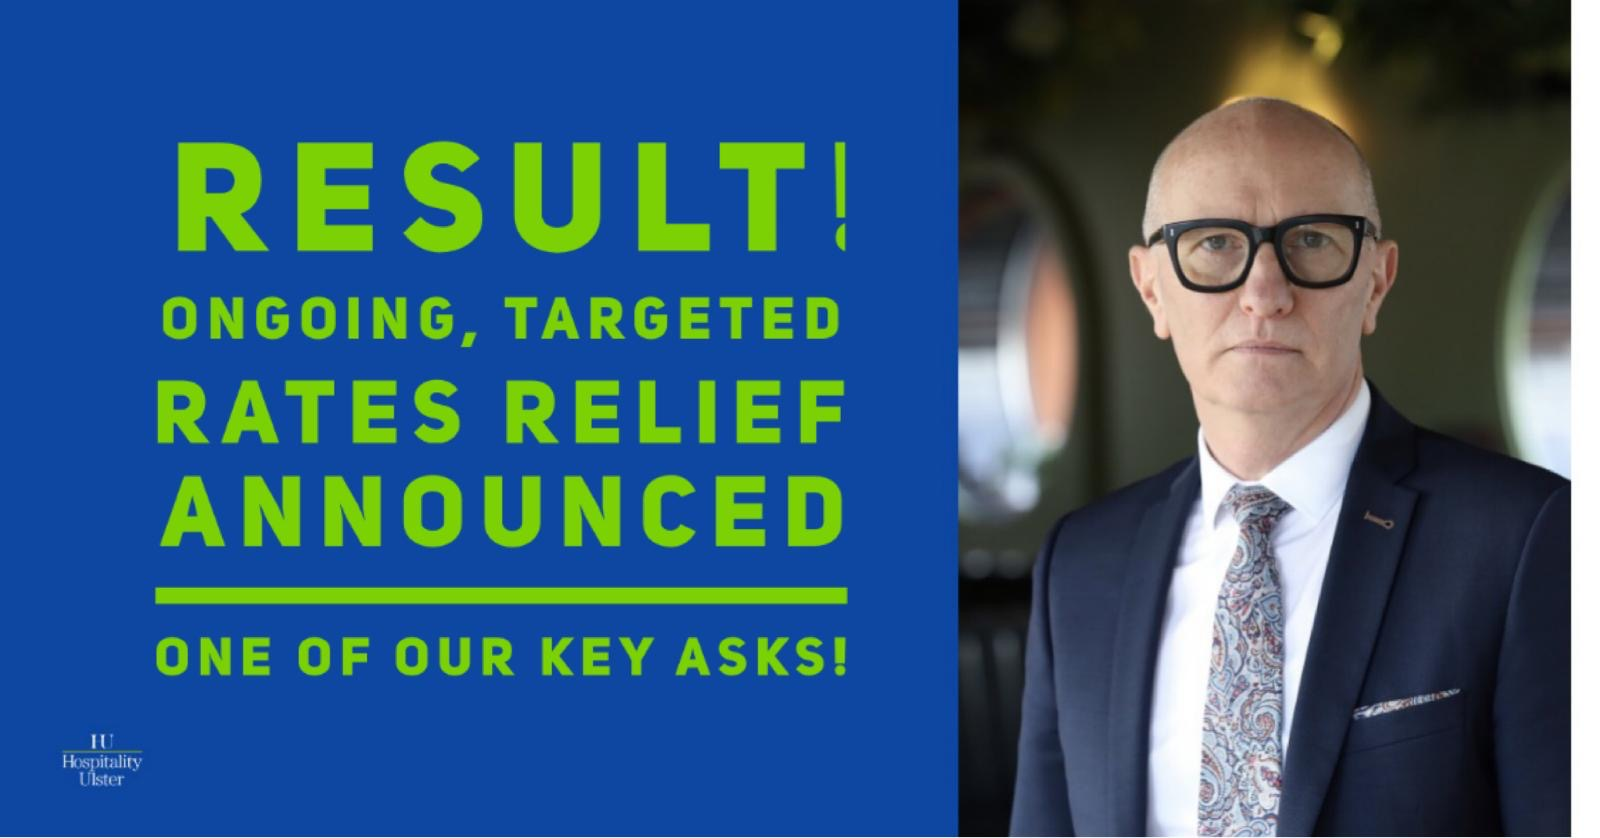 RESULT AS ONGOING TARGETED RATES RELIEF ANNOUNCED